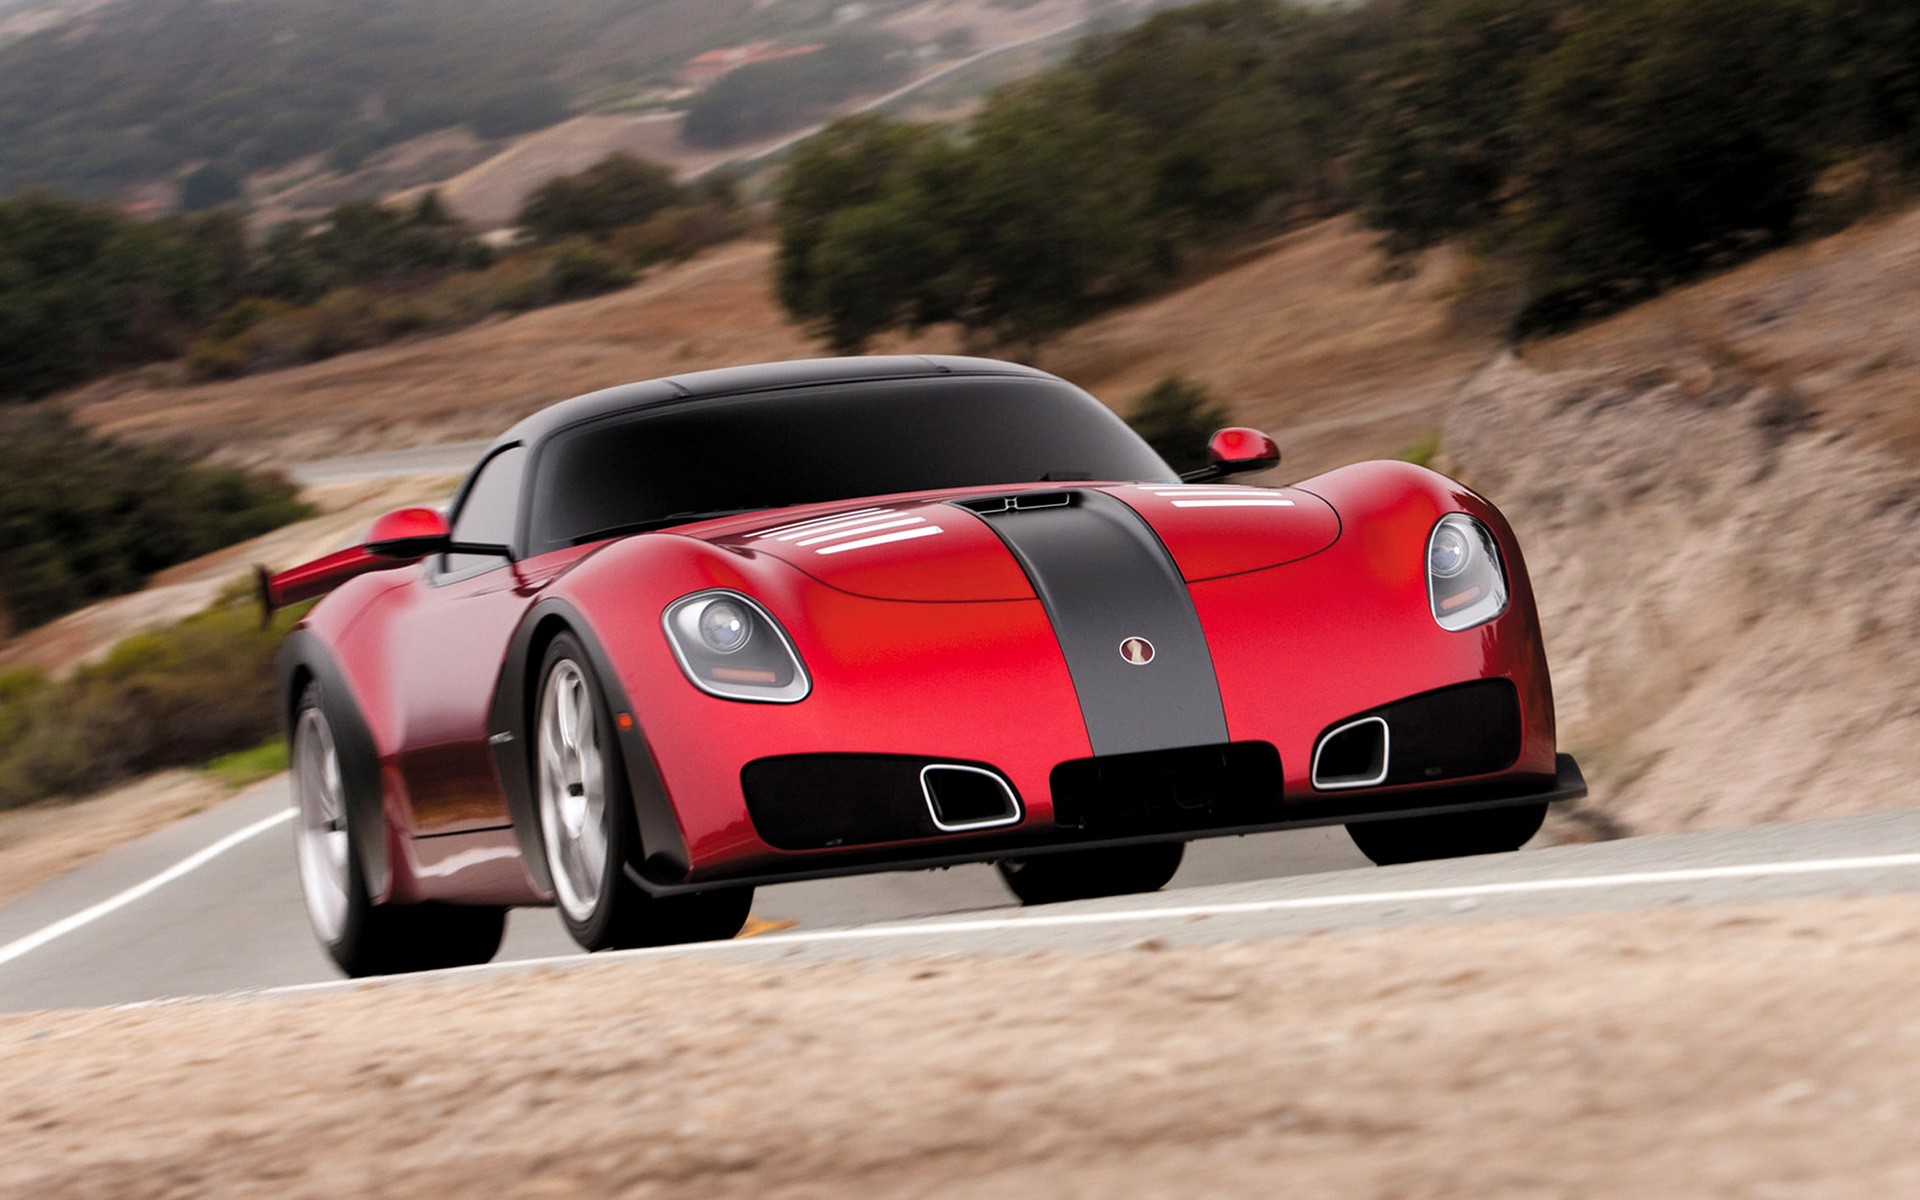 Devon GTX (2009) Wallpapers and HD Images - Car Pixel